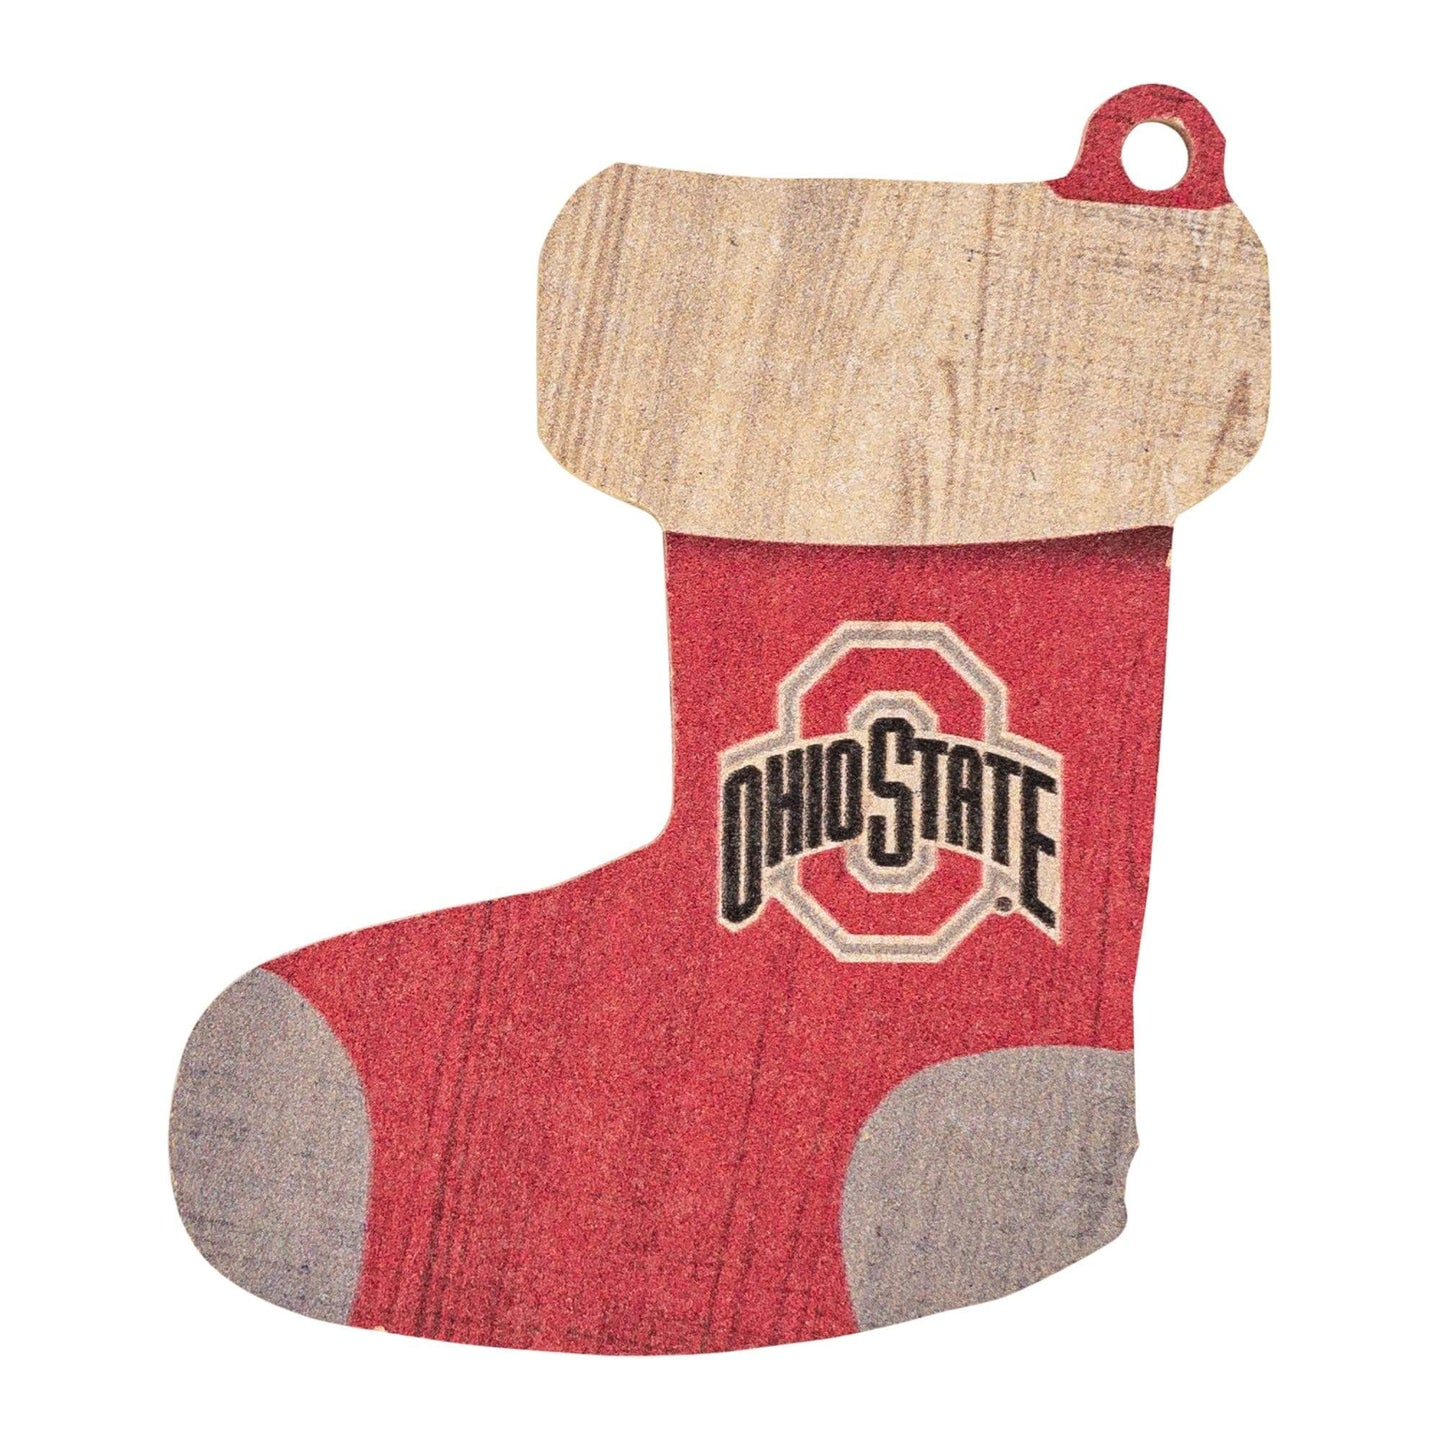 Ohio State Stocking Ornament